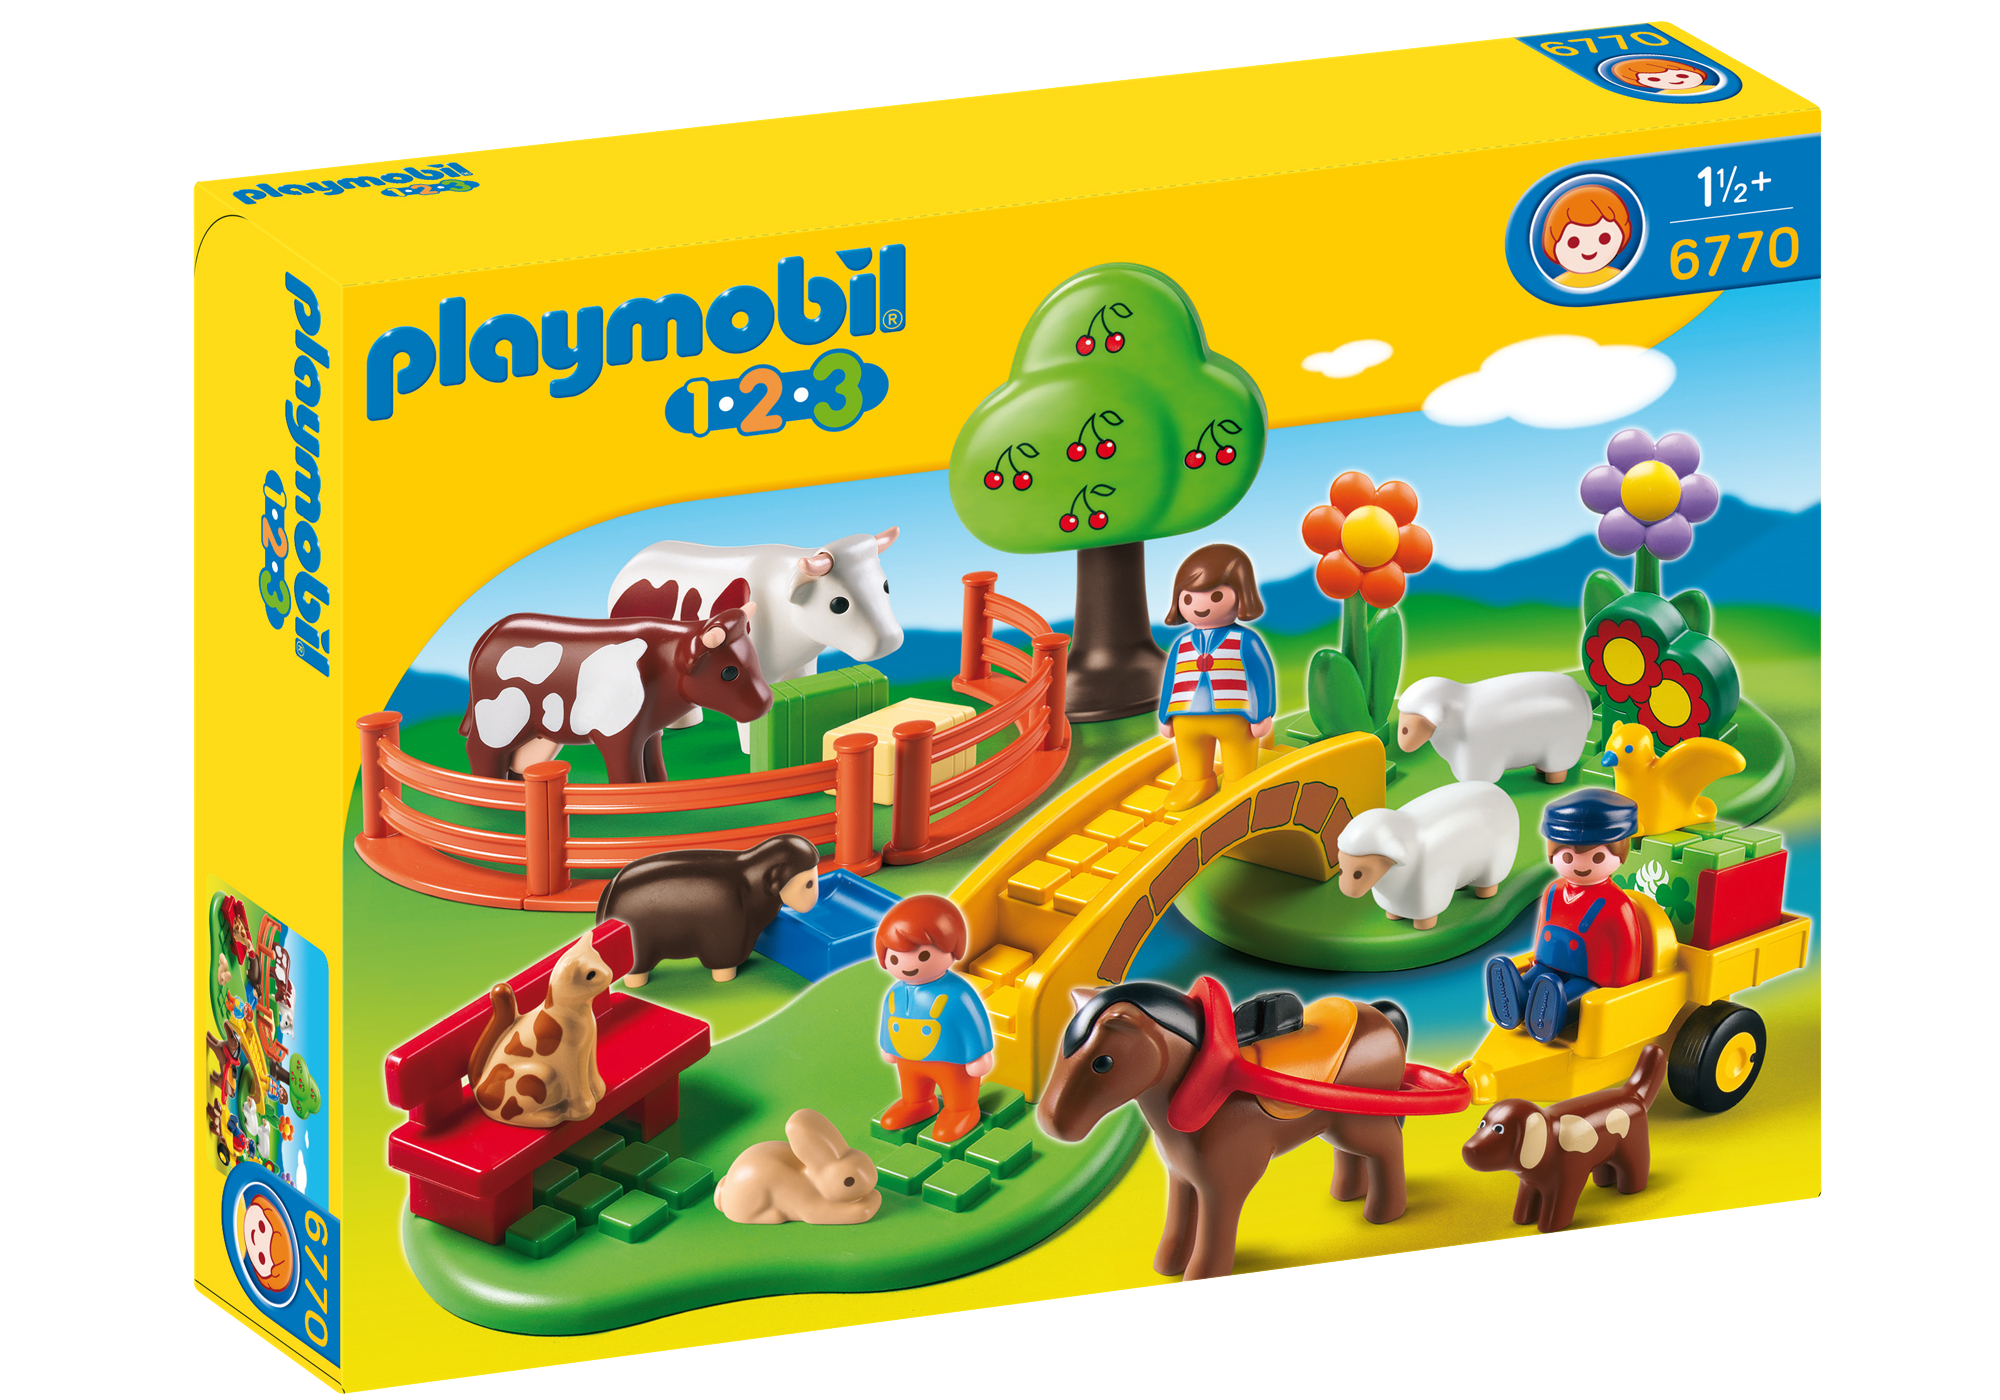 http://media.playmobil.com/i/playmobil/6770_product_box_front/1.2.3 Countryside